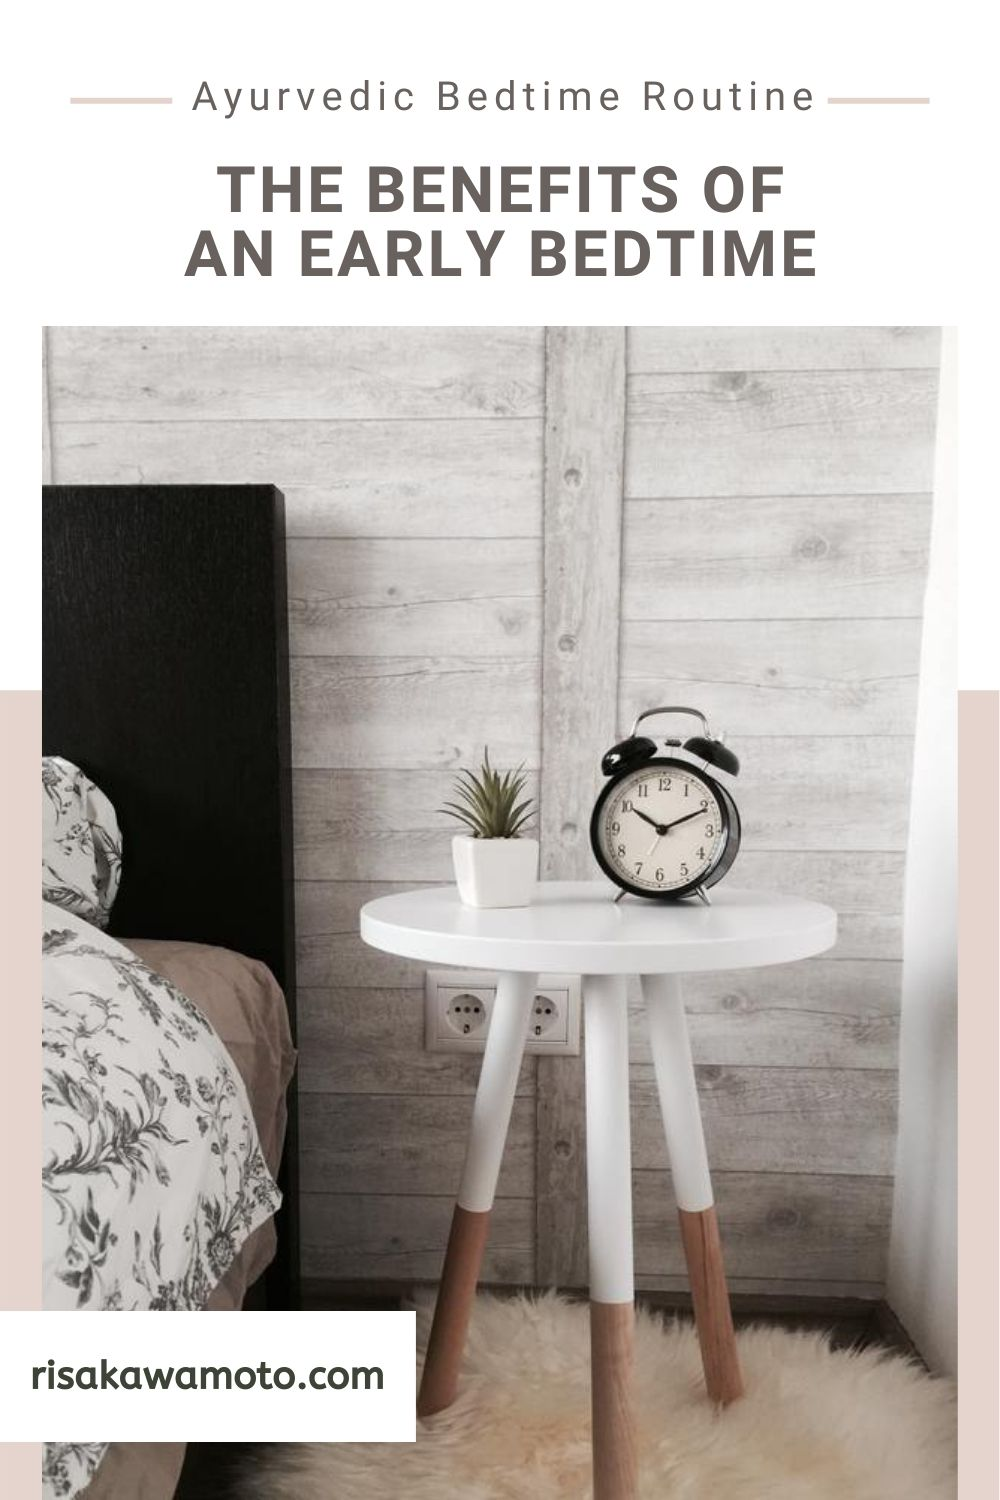 The Benefits of Early Bedtime and am Ayurvedic Bedtime Routine